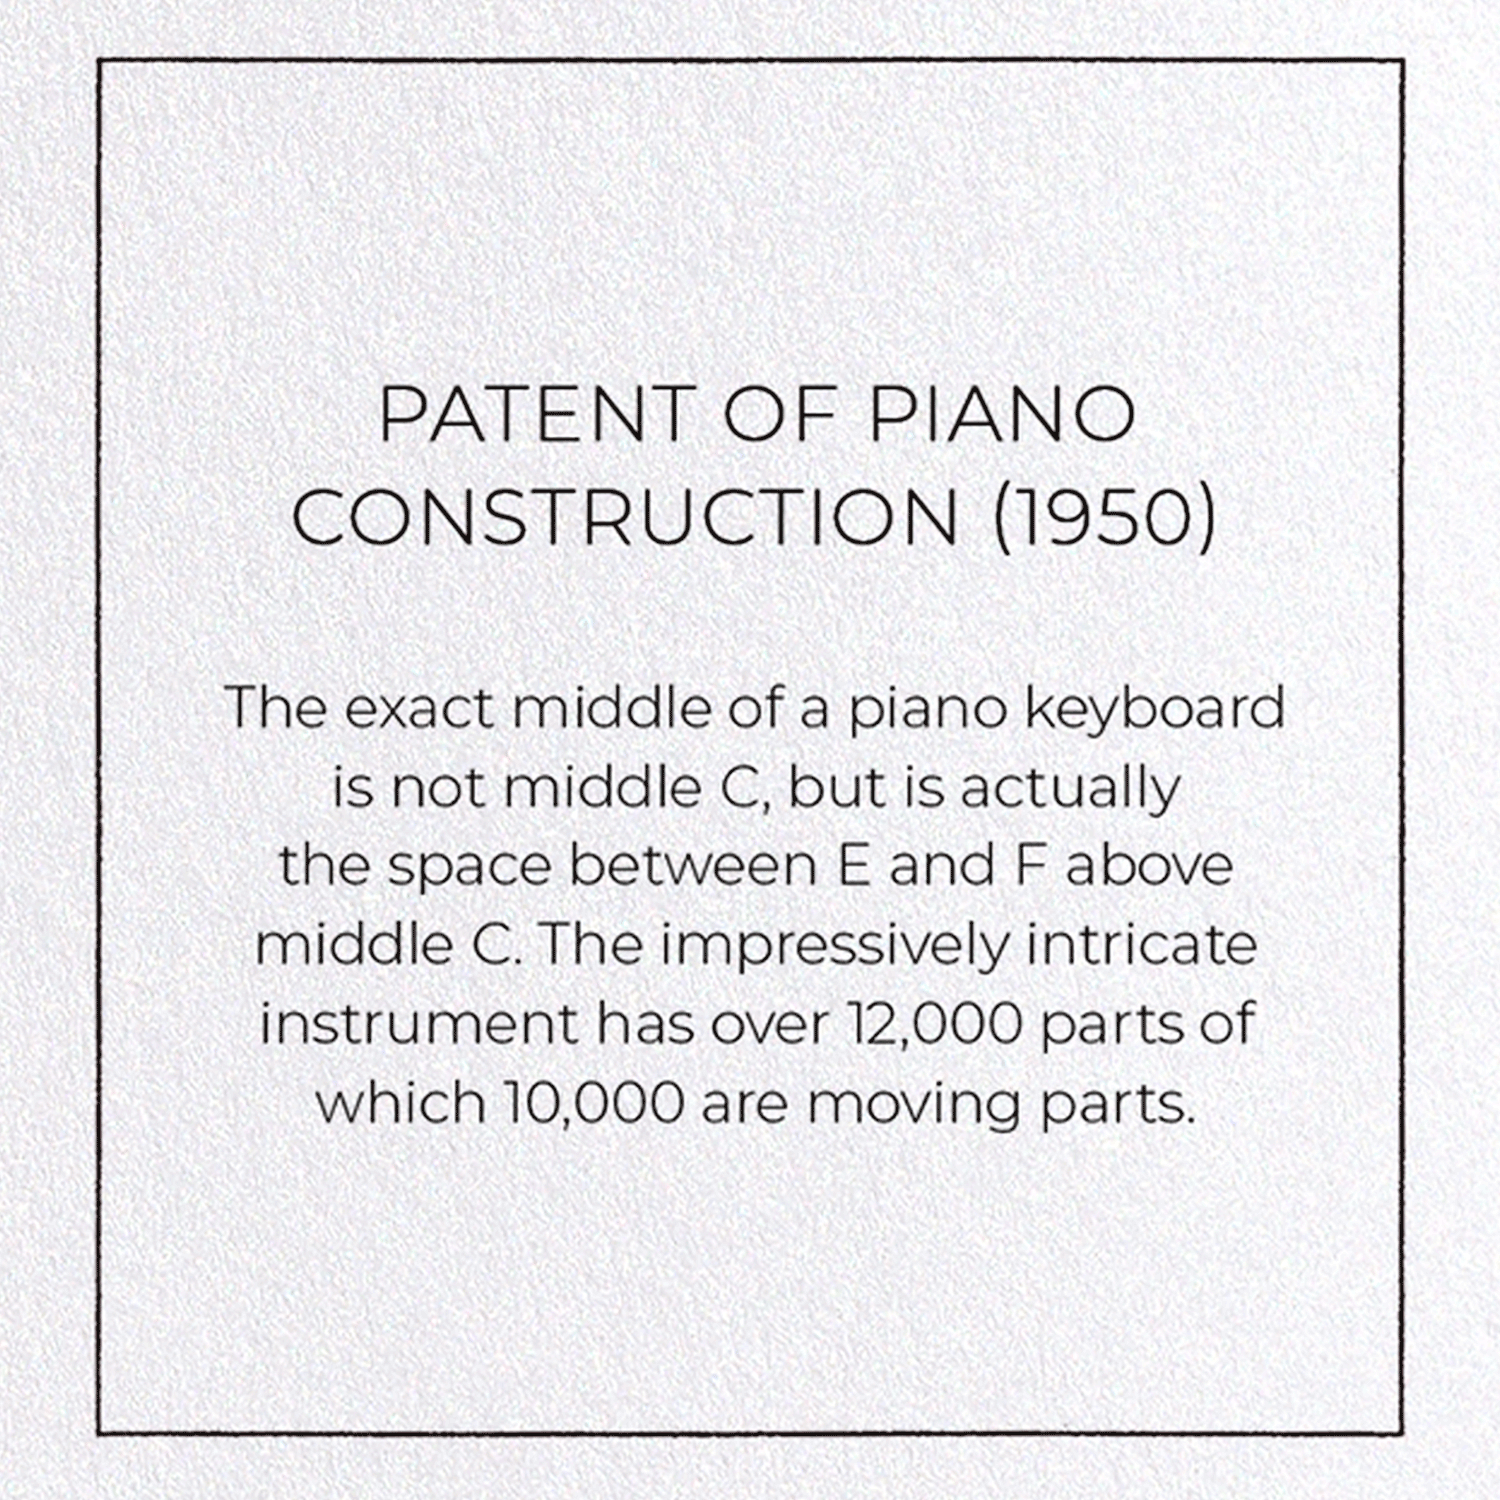 PATENT OF PIANO CONSTRUCTION (1950)